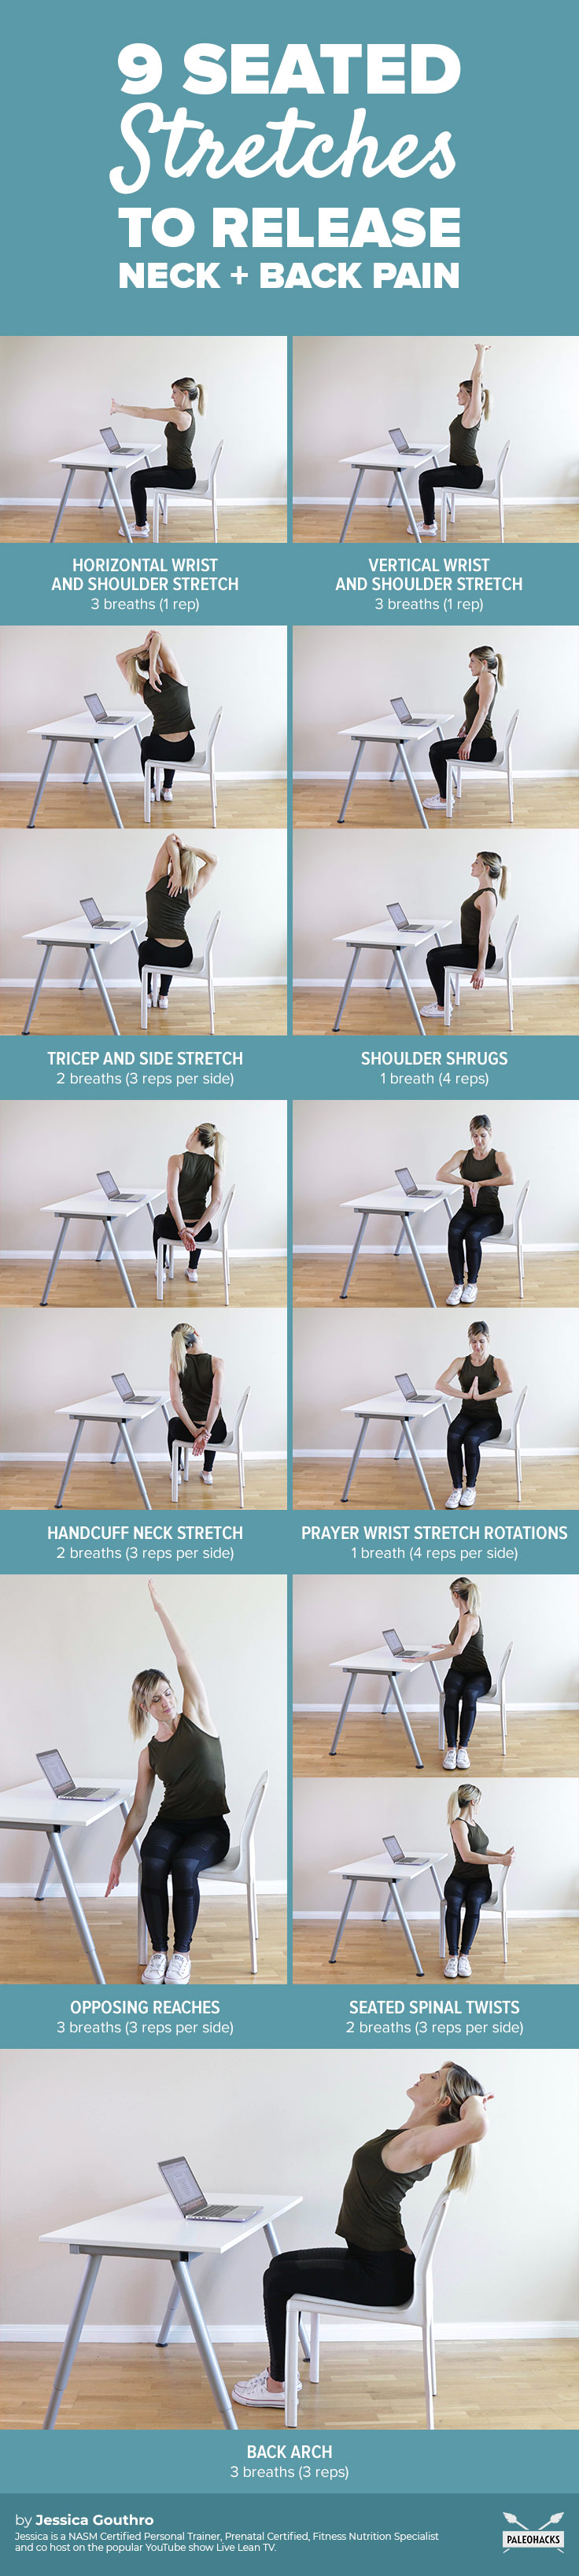 9-Seated-Stretches-to-Release-Neck-Back-Pain-infog.jpg